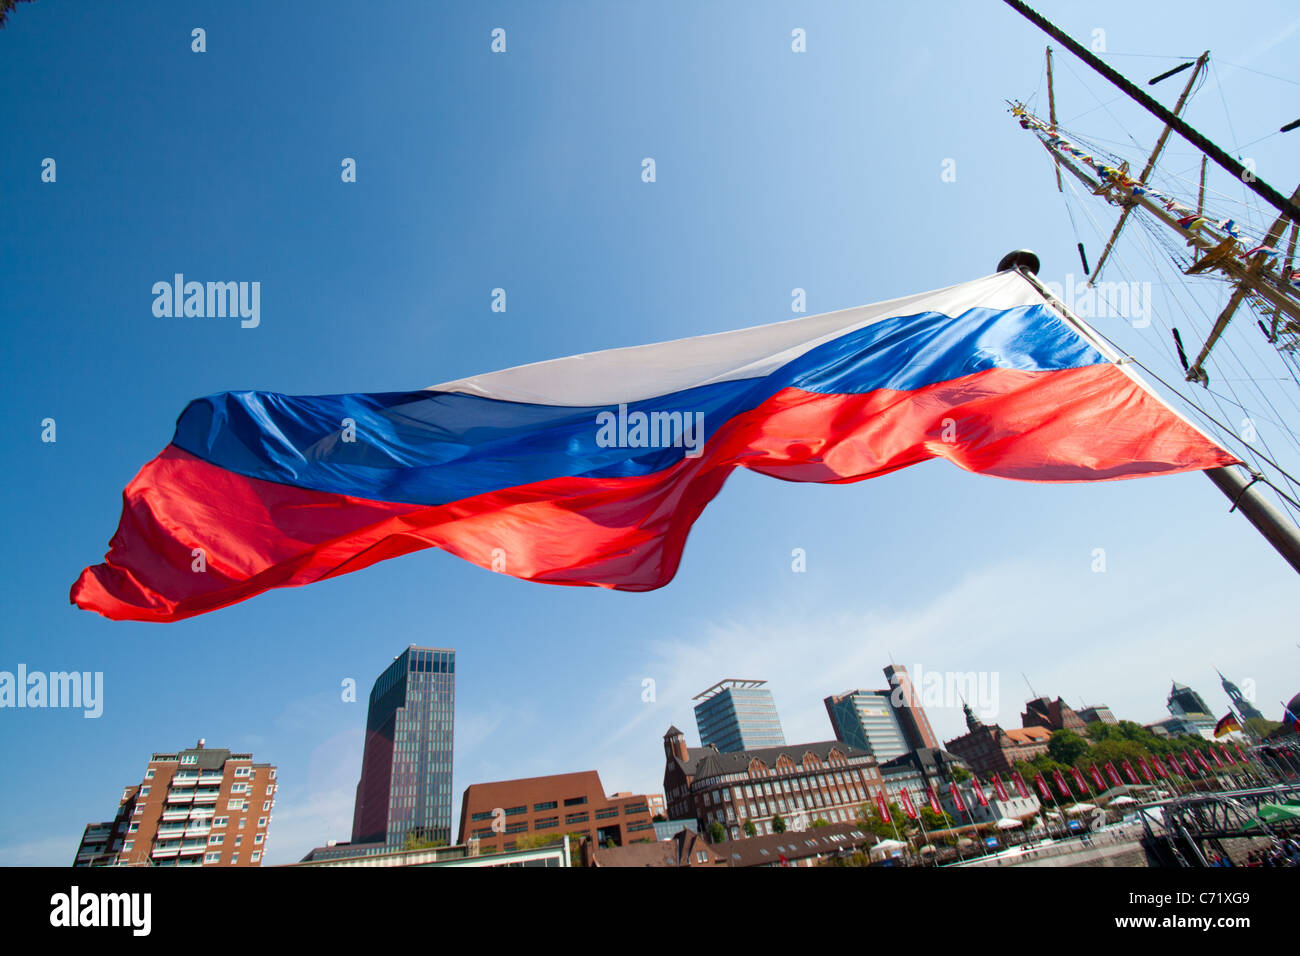 Russian flag on a sail ship in the port of Hamburg. - Stock Image